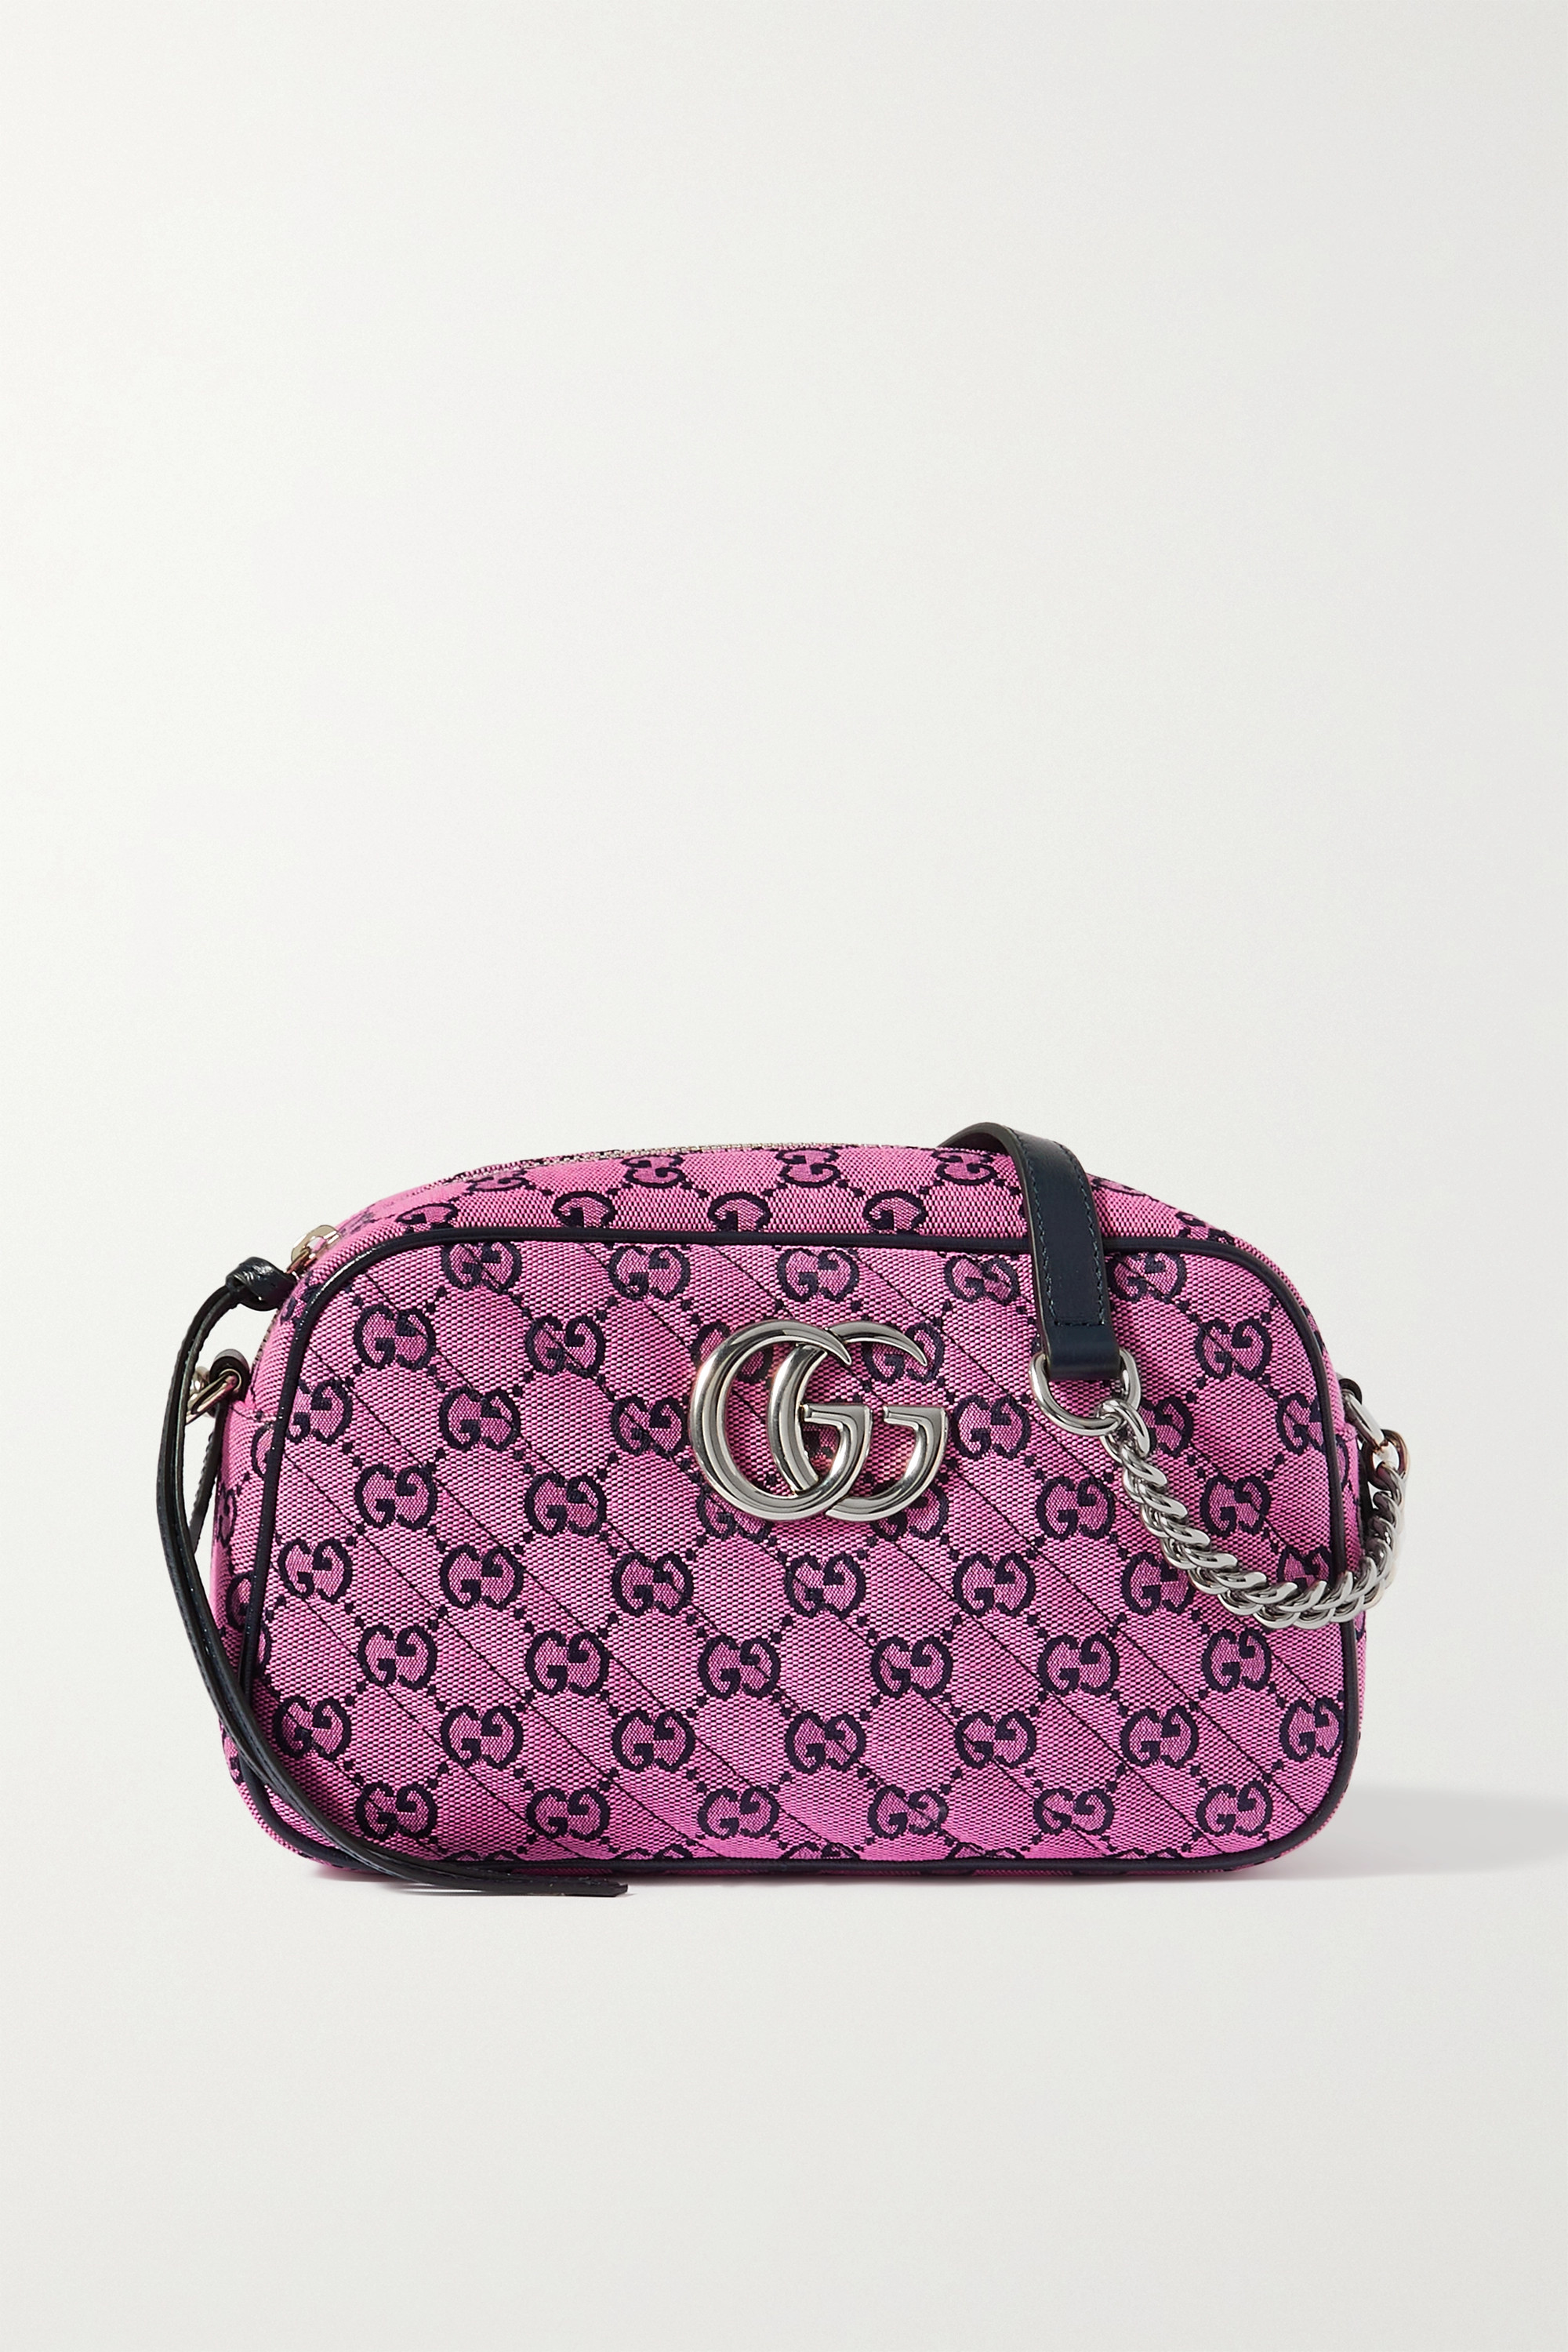 Gucci - GG Marmont Multicolour small quilted jacquard shoulder bag